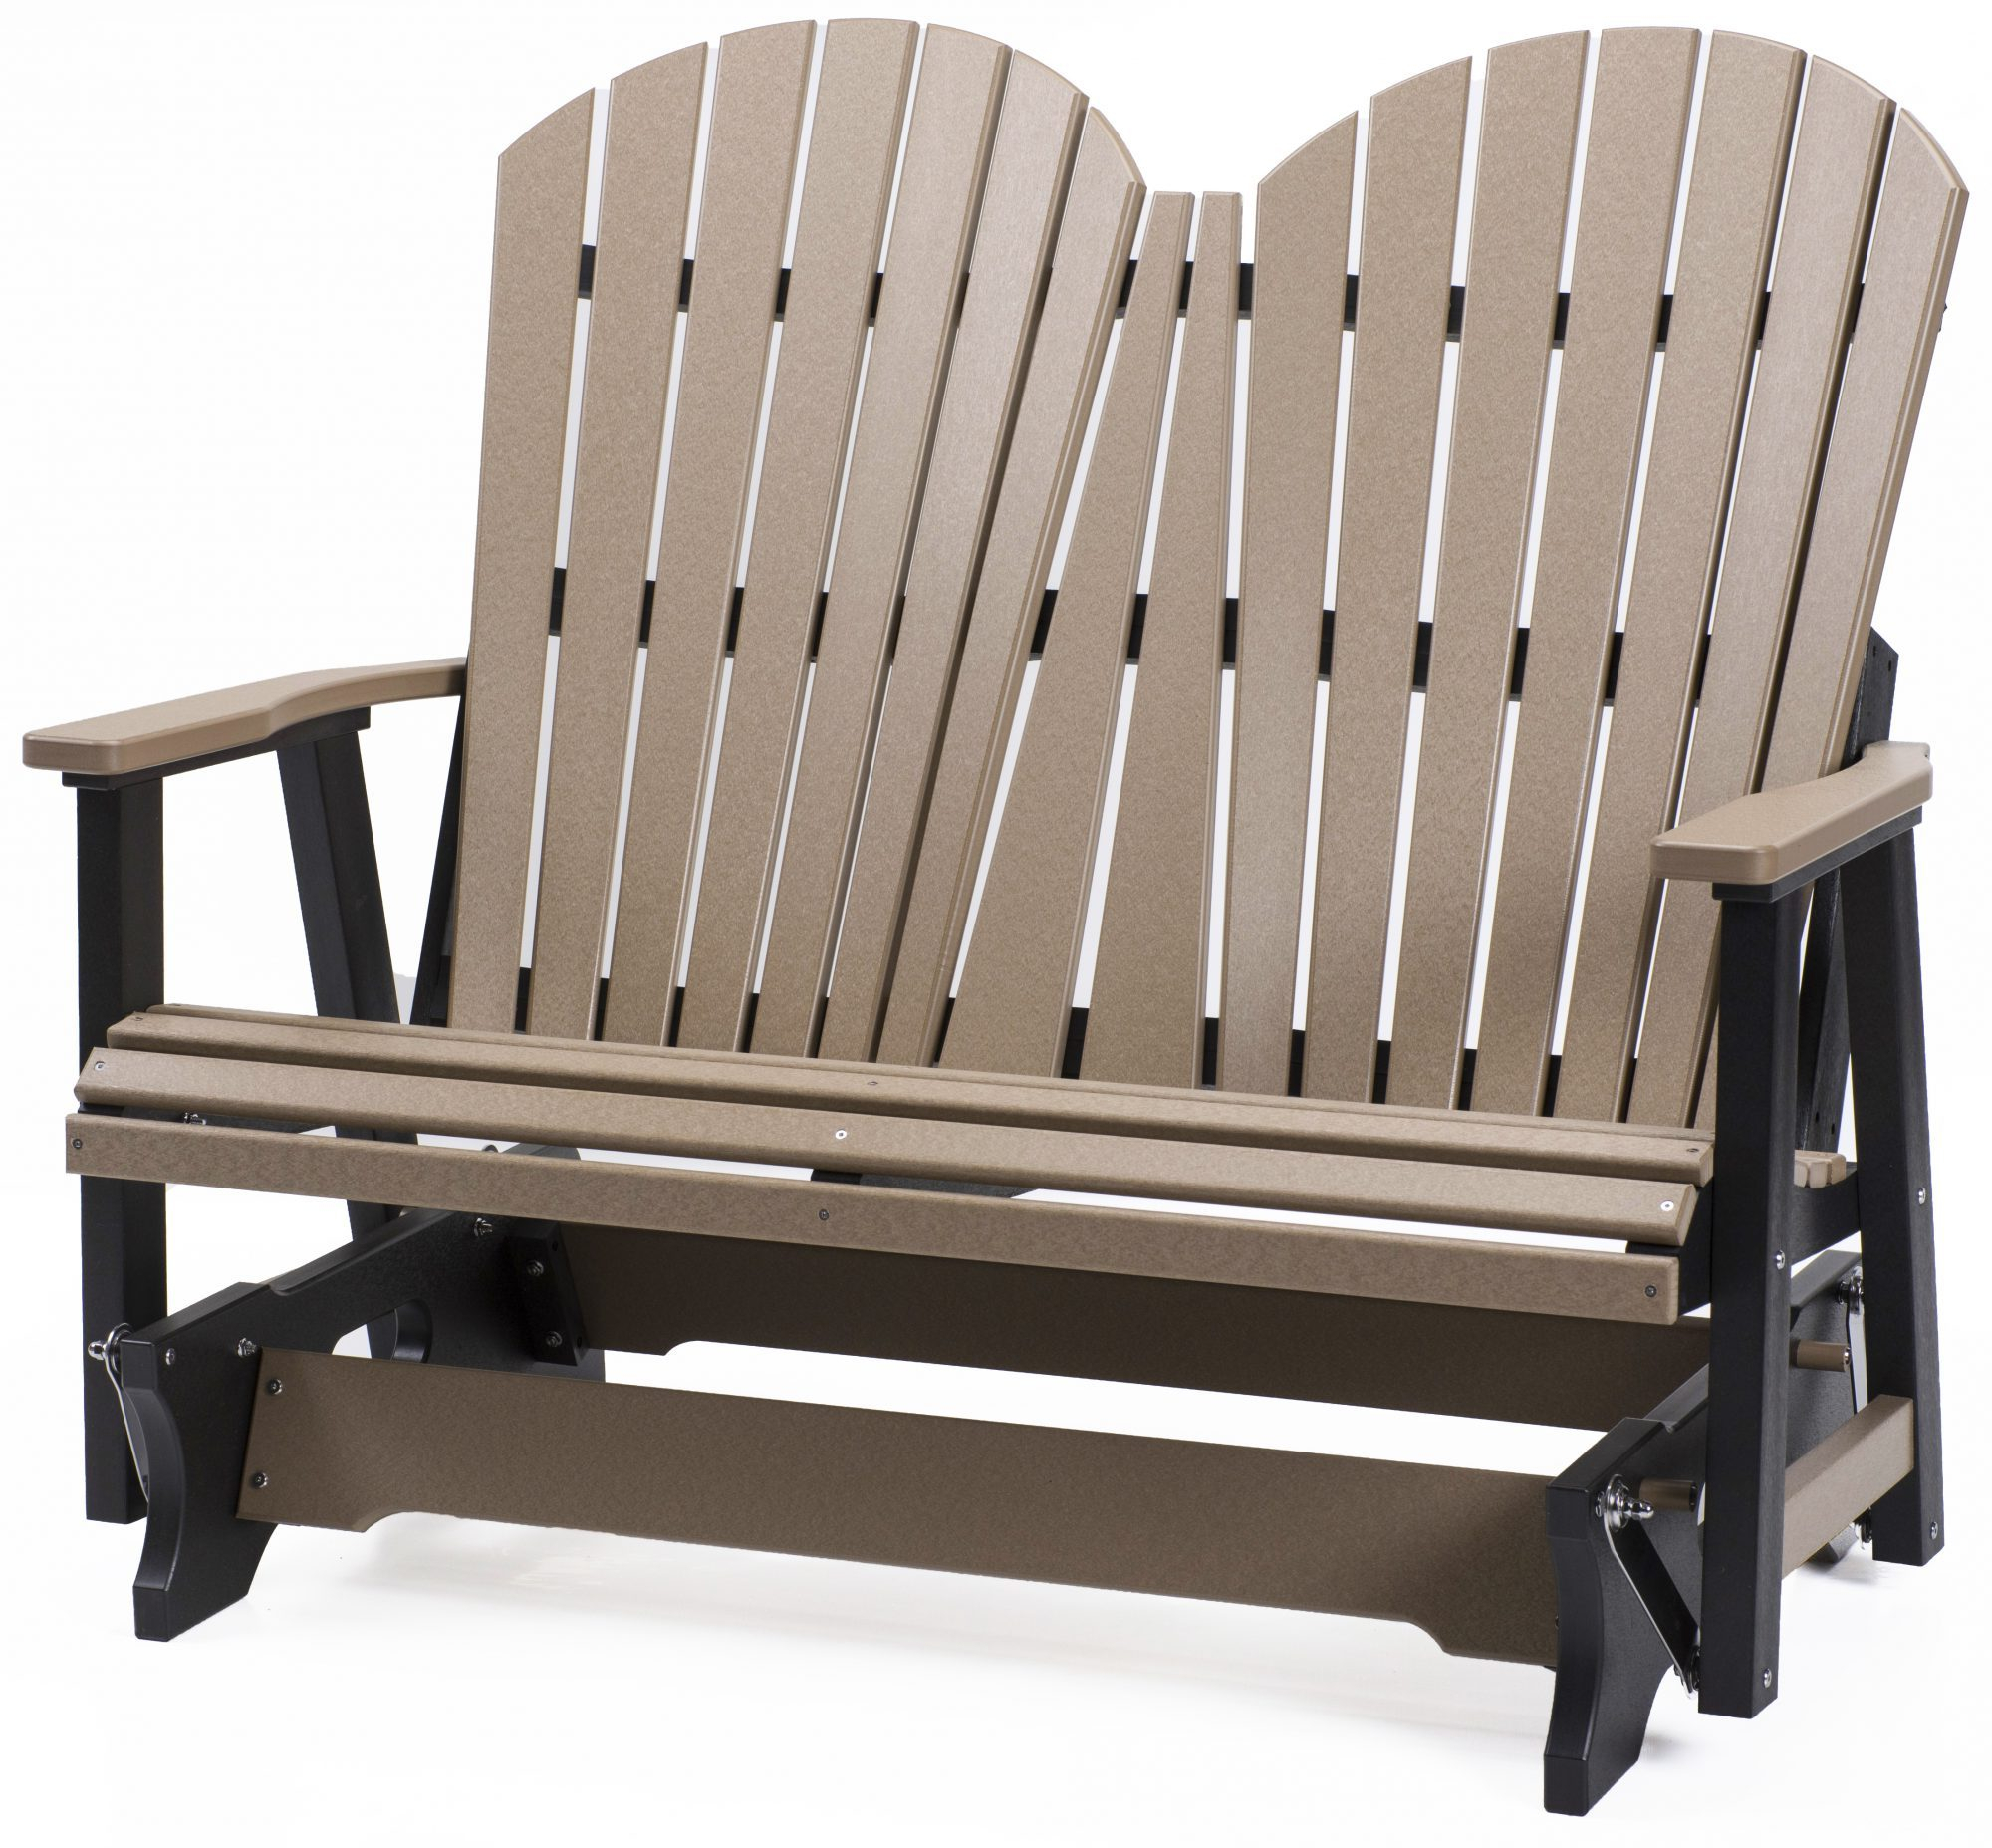 Berlin Gardens Poly Comfo Back Glider Bench | The Amish Inside Classic Adirondack Glider Benches (View 21 of 25)